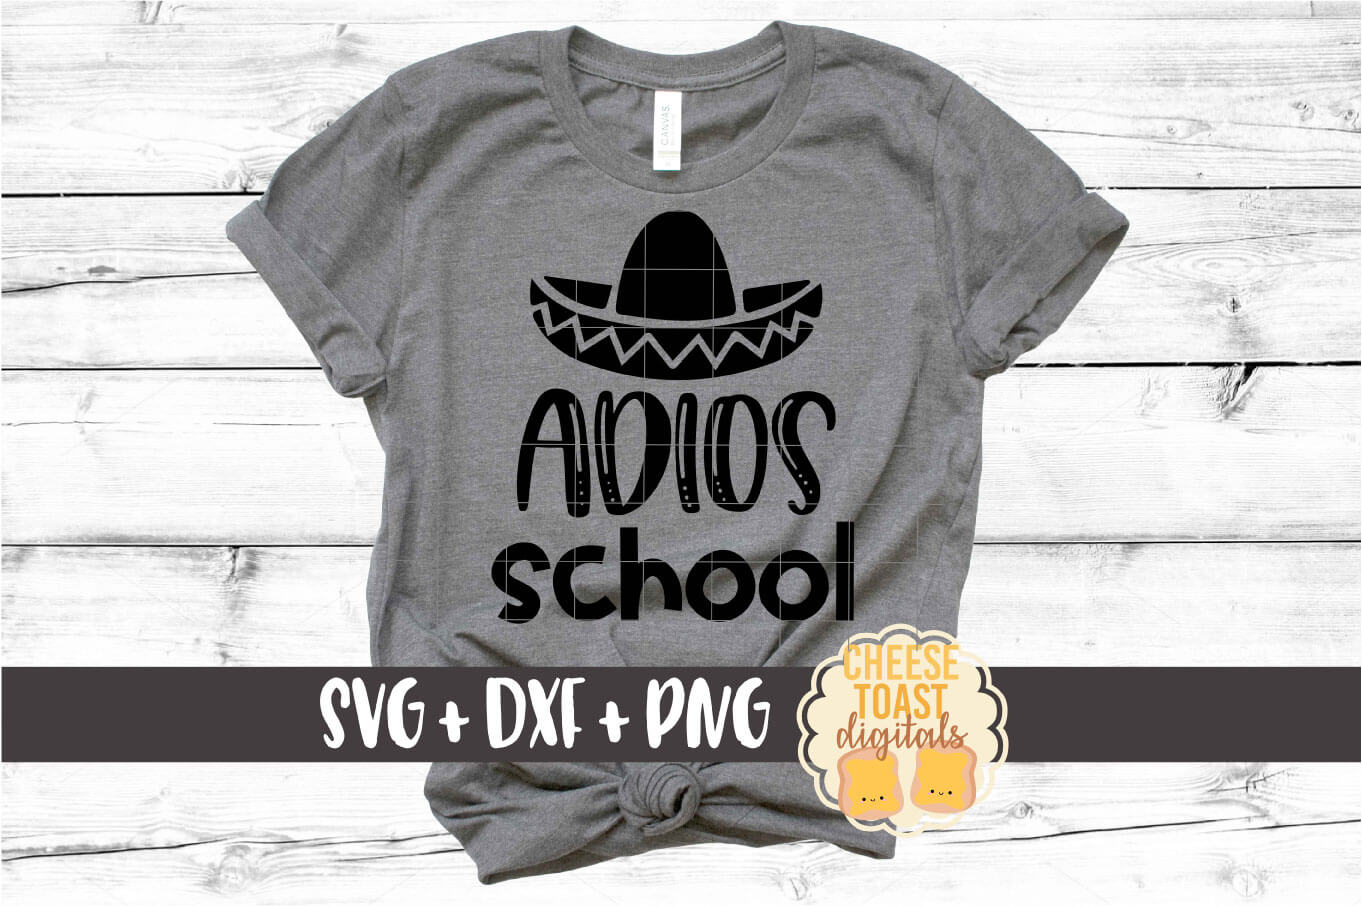 Adios School Bundle - Last Day of School SVG PNG DXF Files example image 2